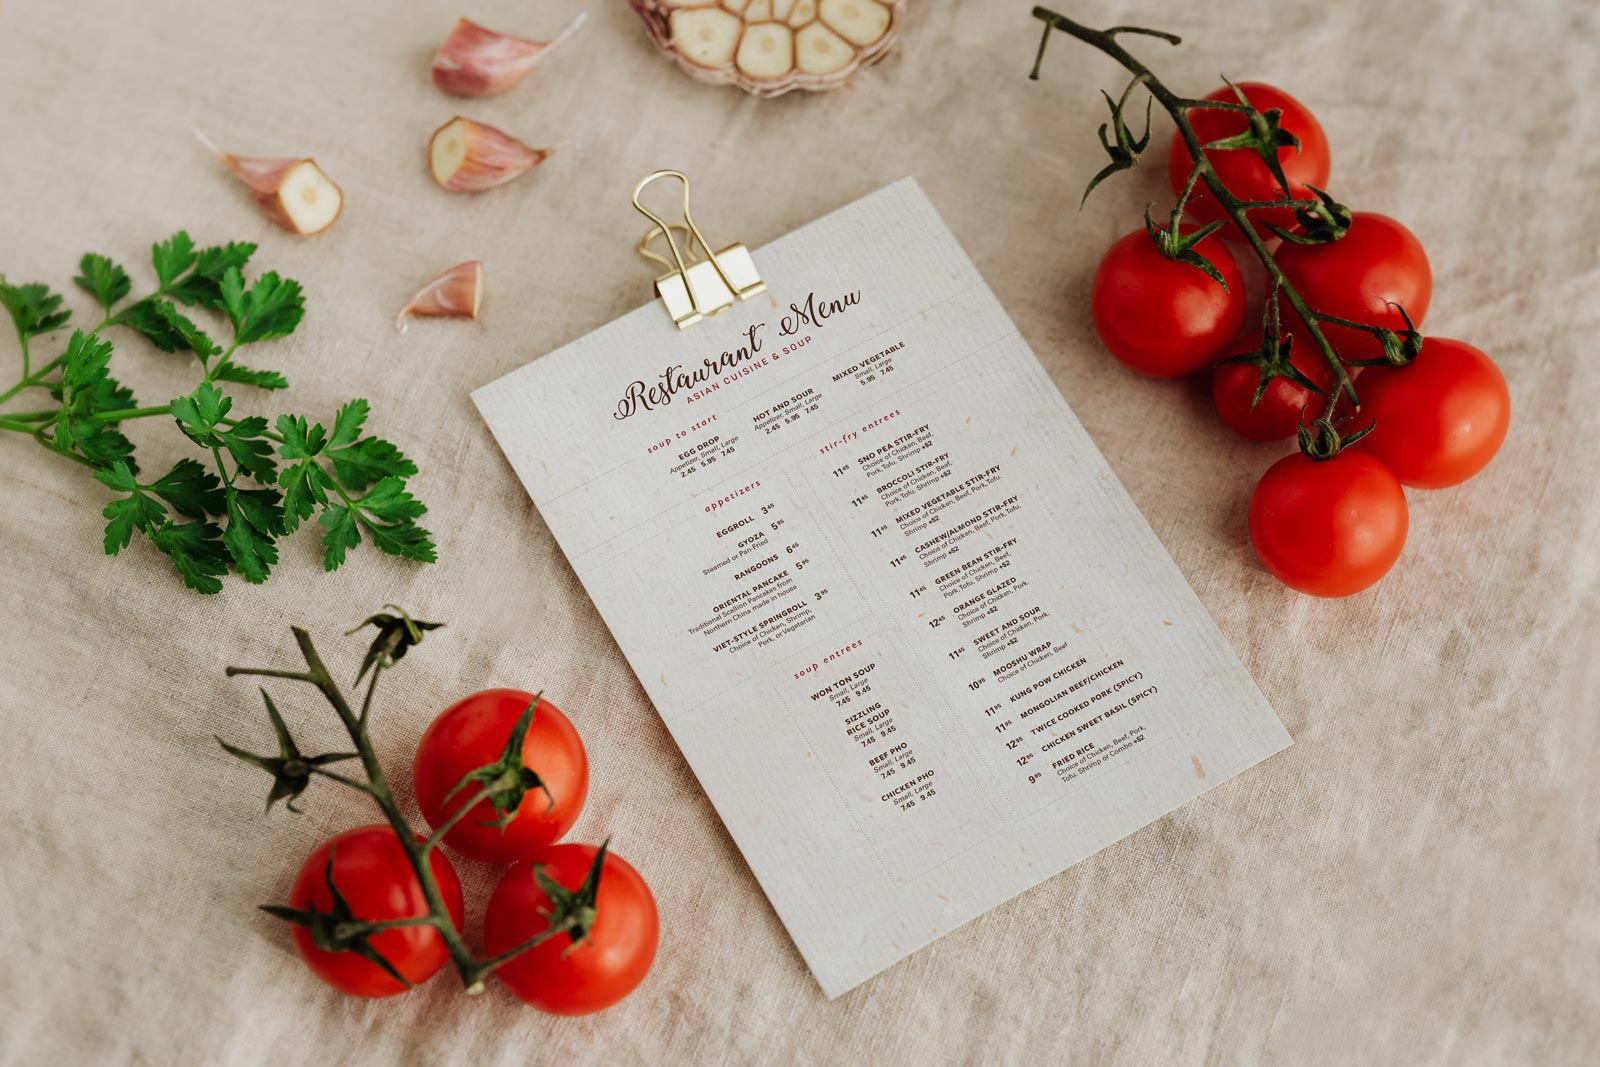 Free-Textured-A4-Menu-Cooking-Recipe-Mockup-PSD